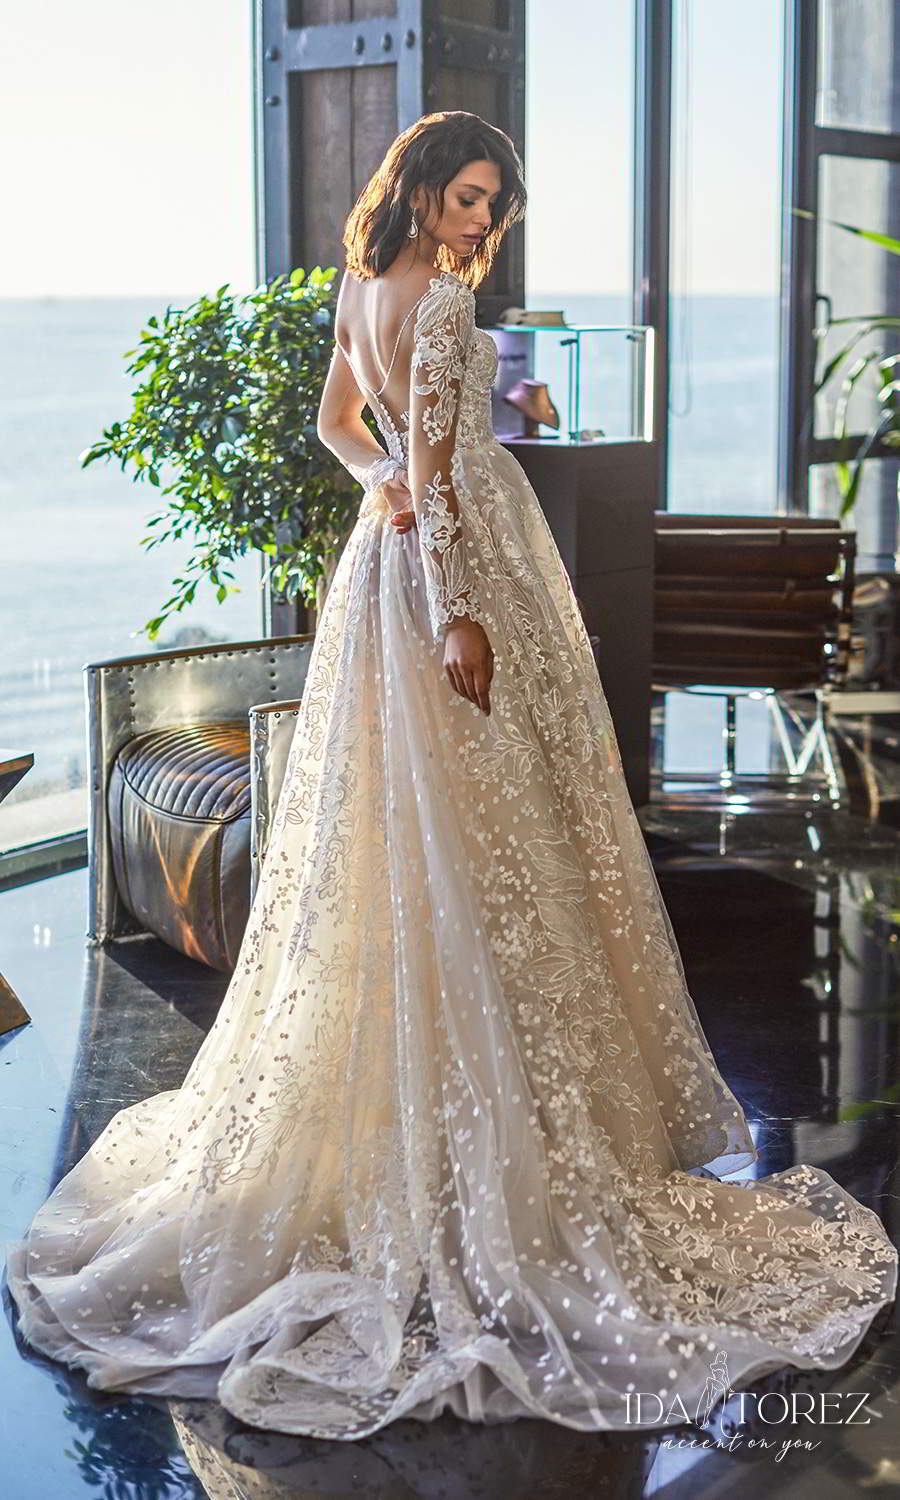 ida torez 2021 bridal long sleeve plunging v neckline fully embellished lace a line ball gown wedding dress chapel train sheer back (ideal woman) bv